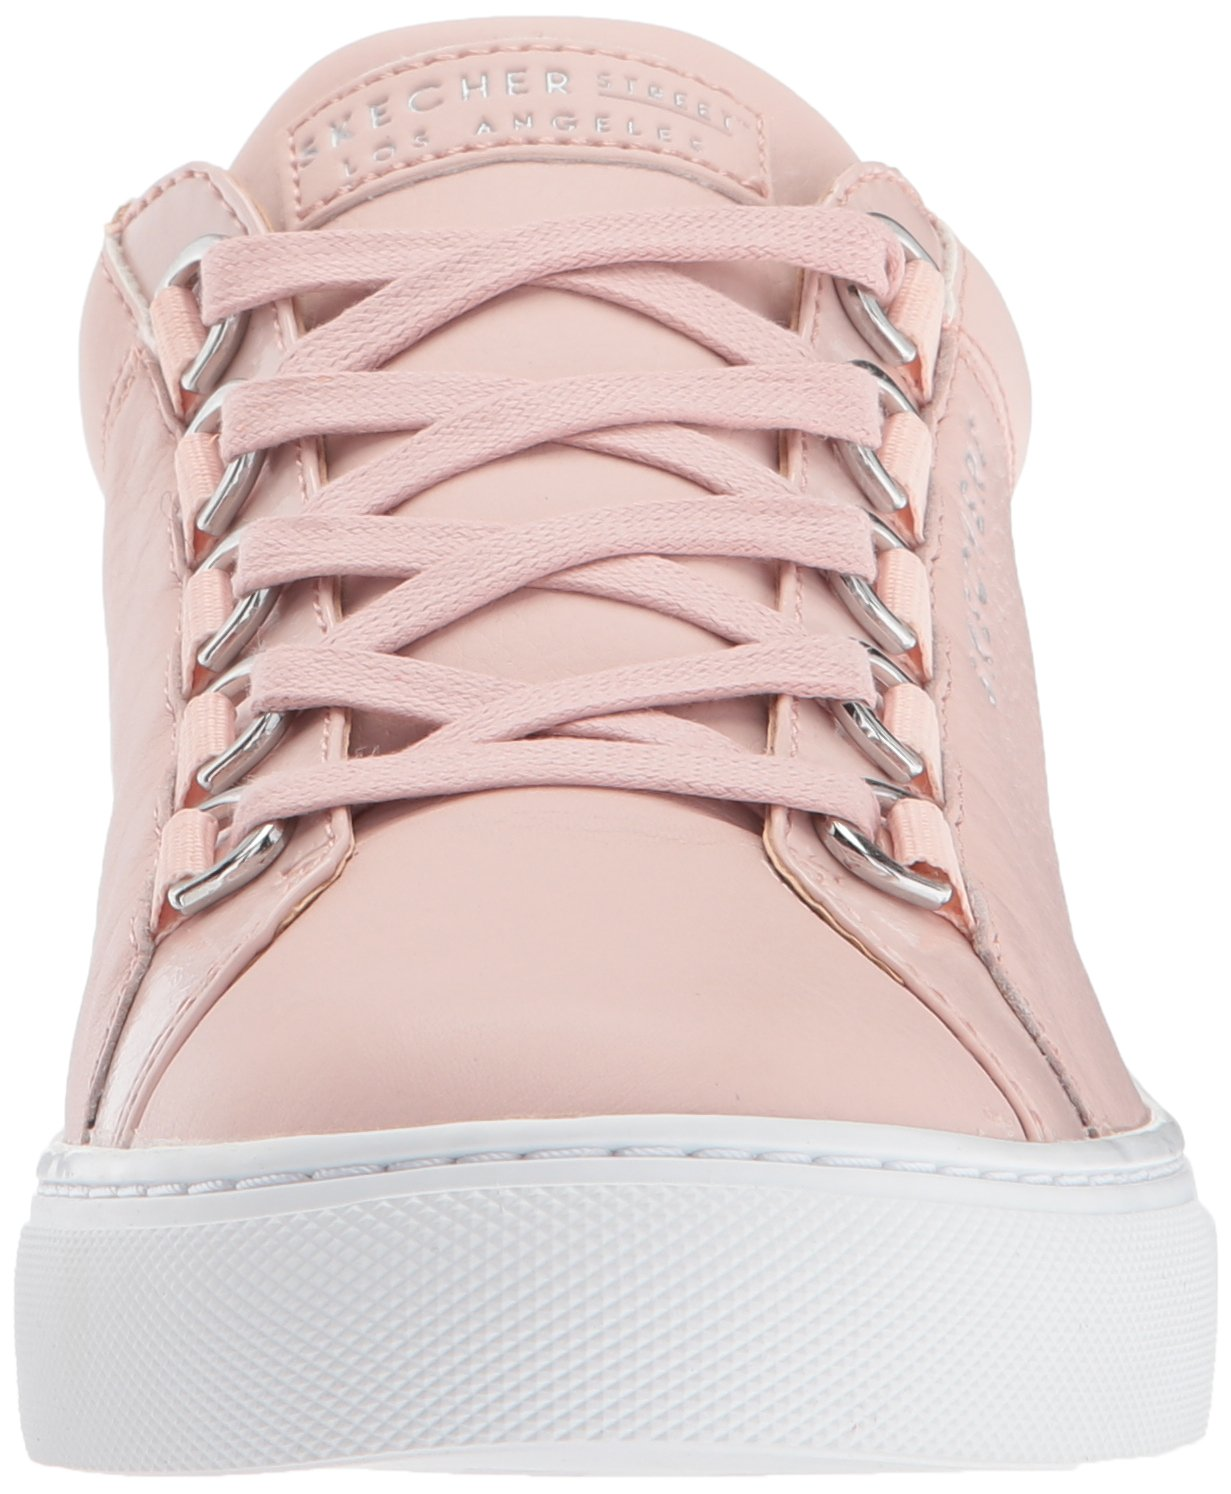 Skechers Women's Side Street-Core-Set US|Light Sneaker B0742TJR2D 11 B(M) US|Light Street-Core-Set Pink 202613